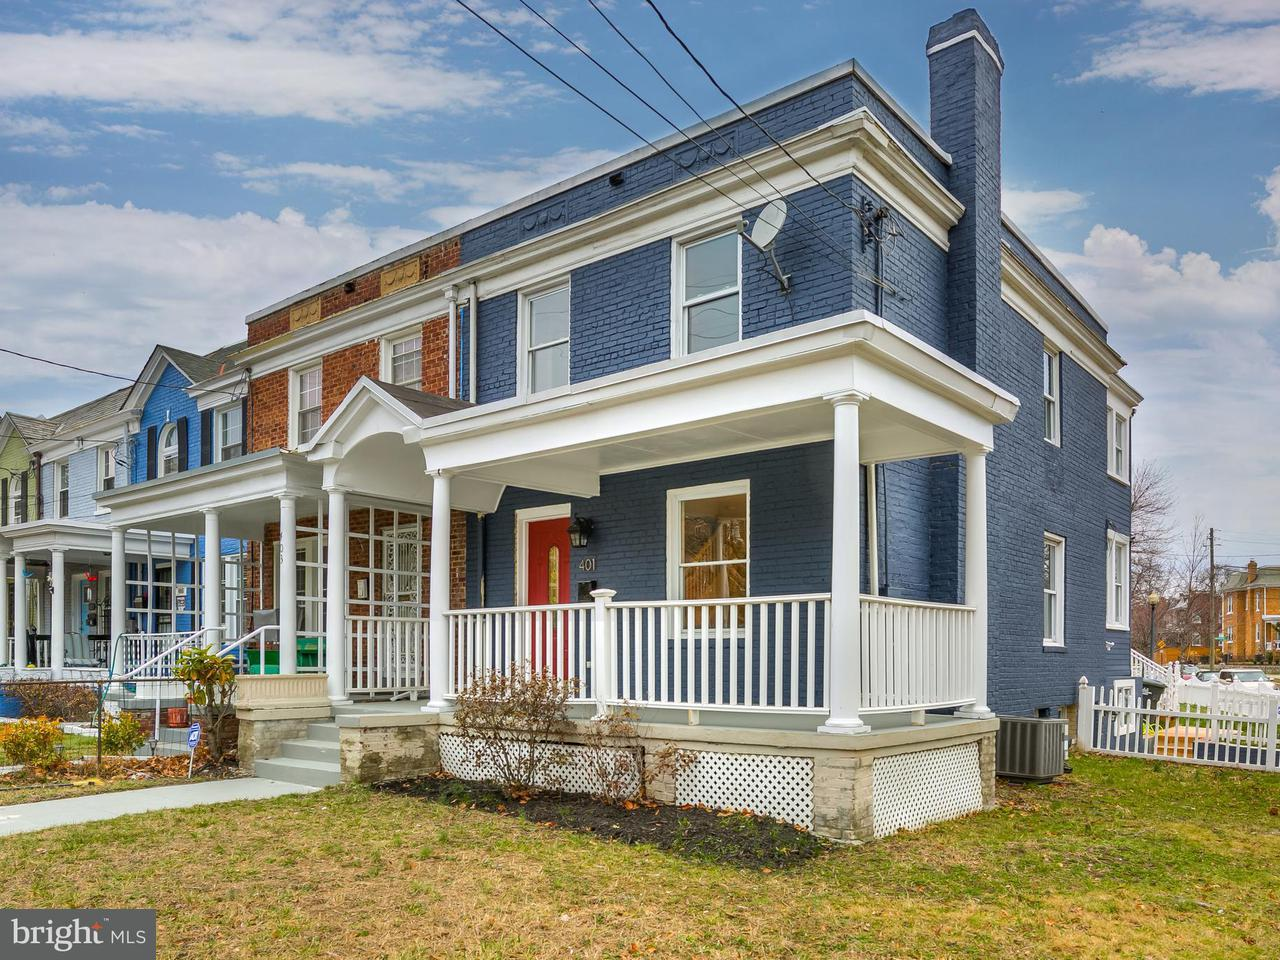 Single Family for Sale at 401 Missouri Ave NW Washington, District Of Columbia 20011 United States